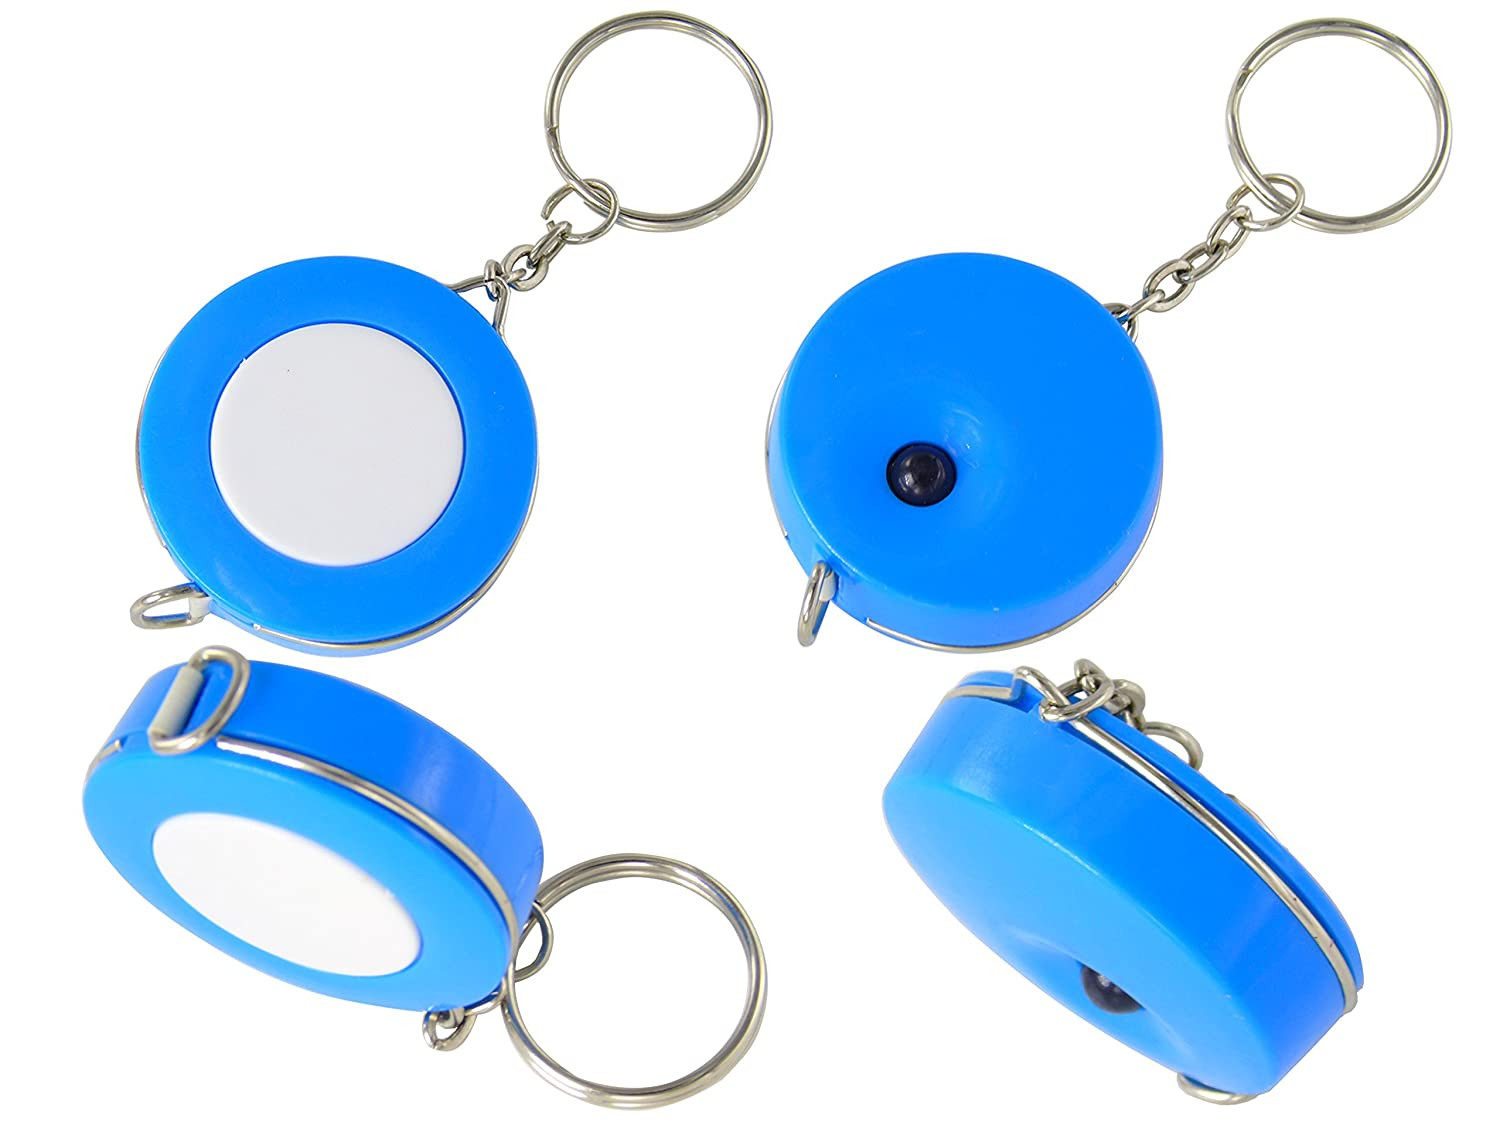 Lontenrea 5 Pack 60-Inch Soft and Retractable Tape Measure With Keychain for Tailor Sewing Body Measure Tape